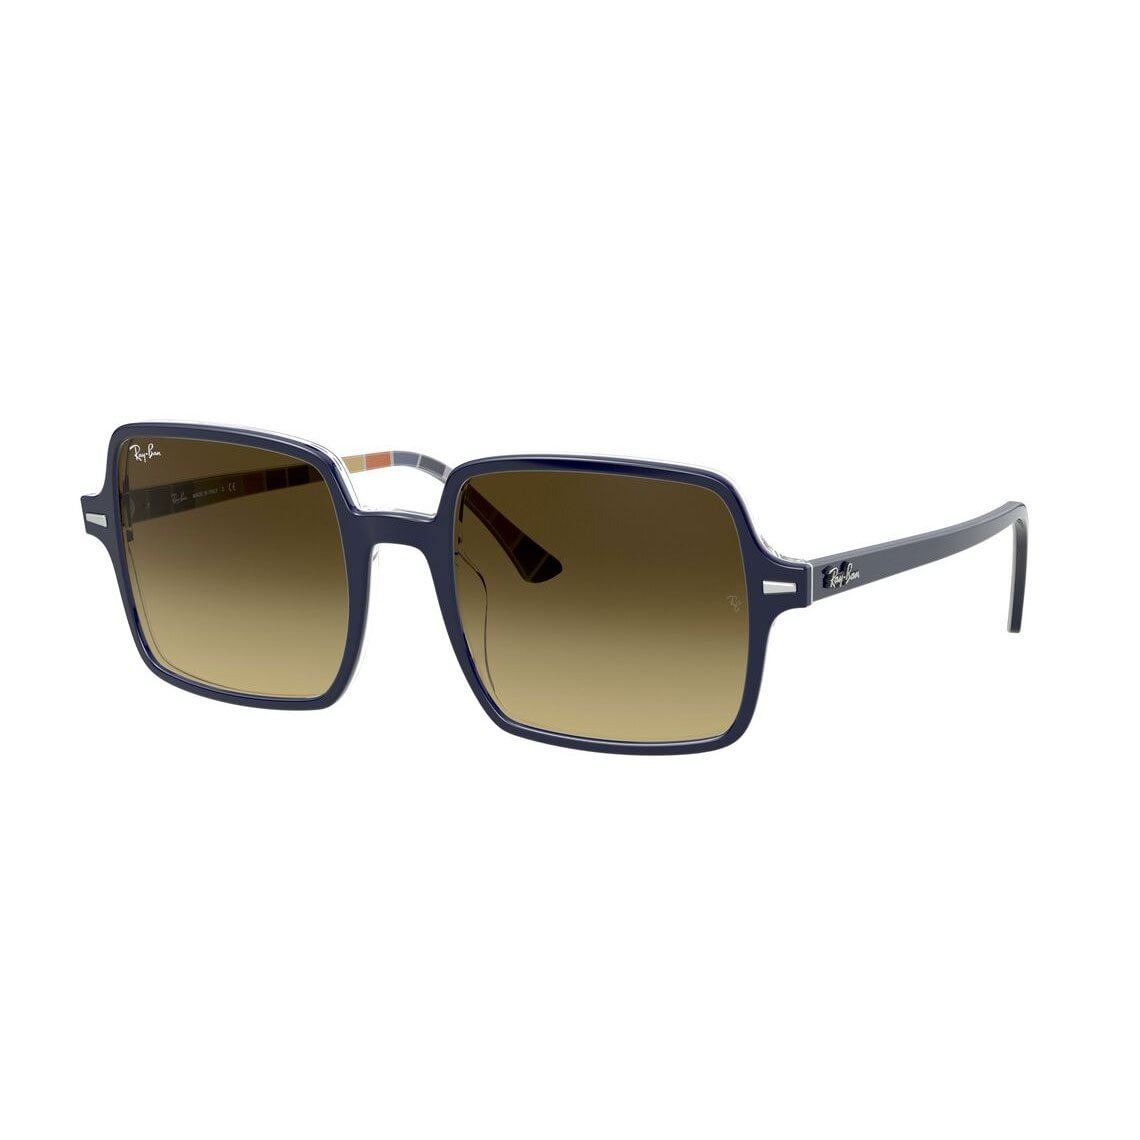 Ray-Ban Square II RB1973 132085 5320